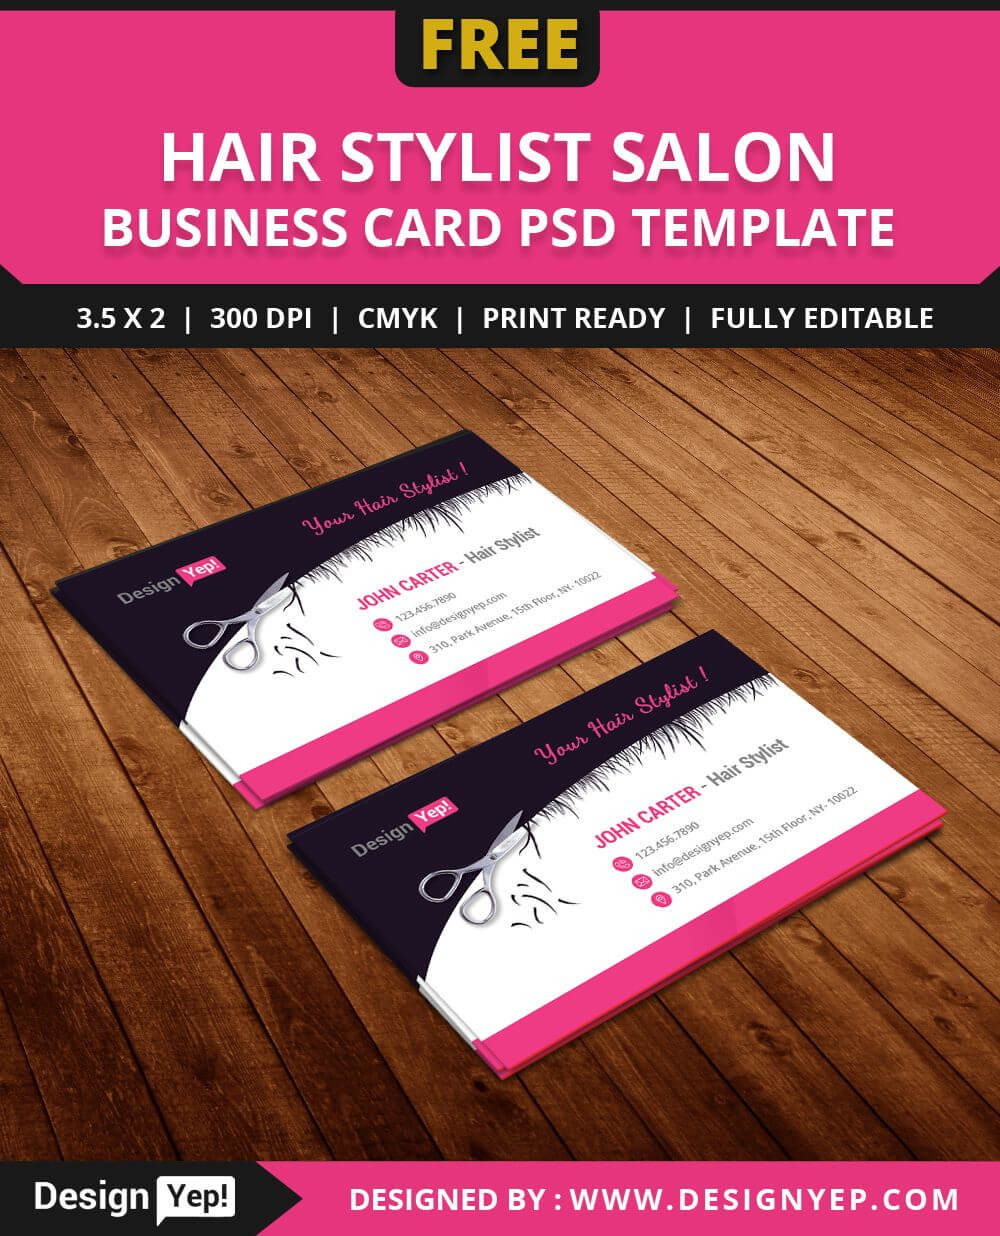 Free Hair Stylist Salon Business Card Template Psd | Salon With Regard To Hairdresser Business Card Templates Free